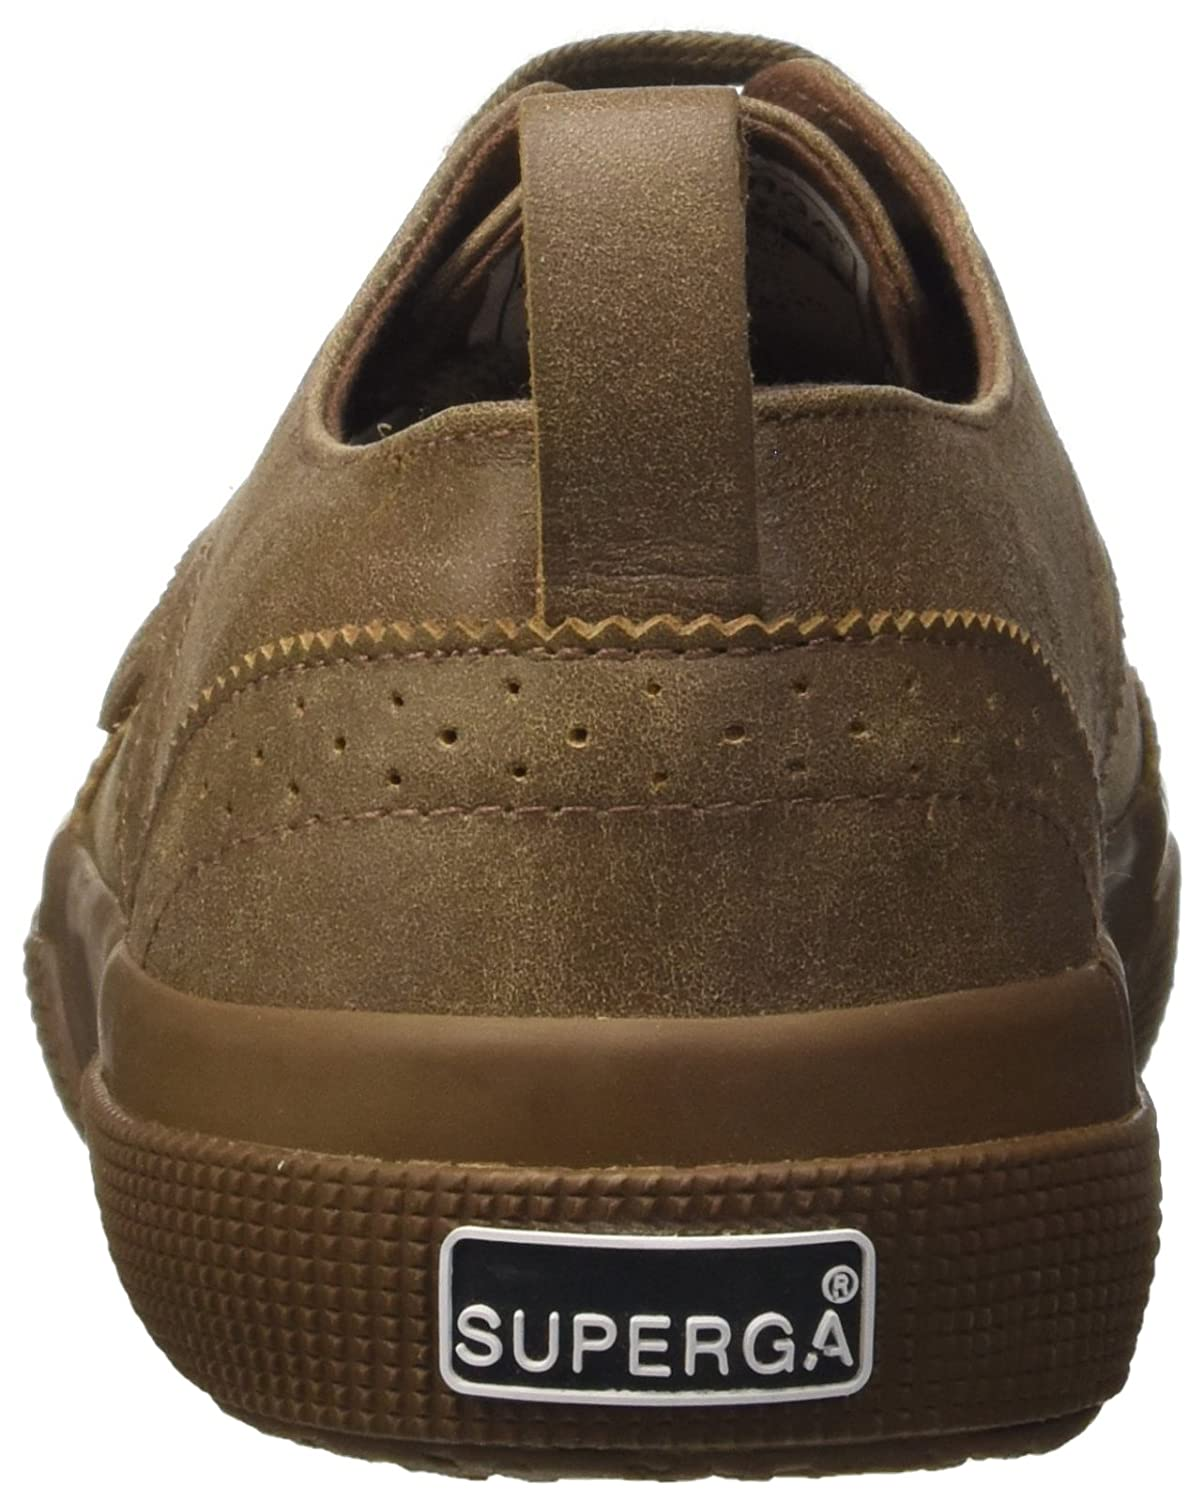 Superga 2332-Fglcrackm, Scarpe Low-Top Uomo, Full Moro, 40 EU